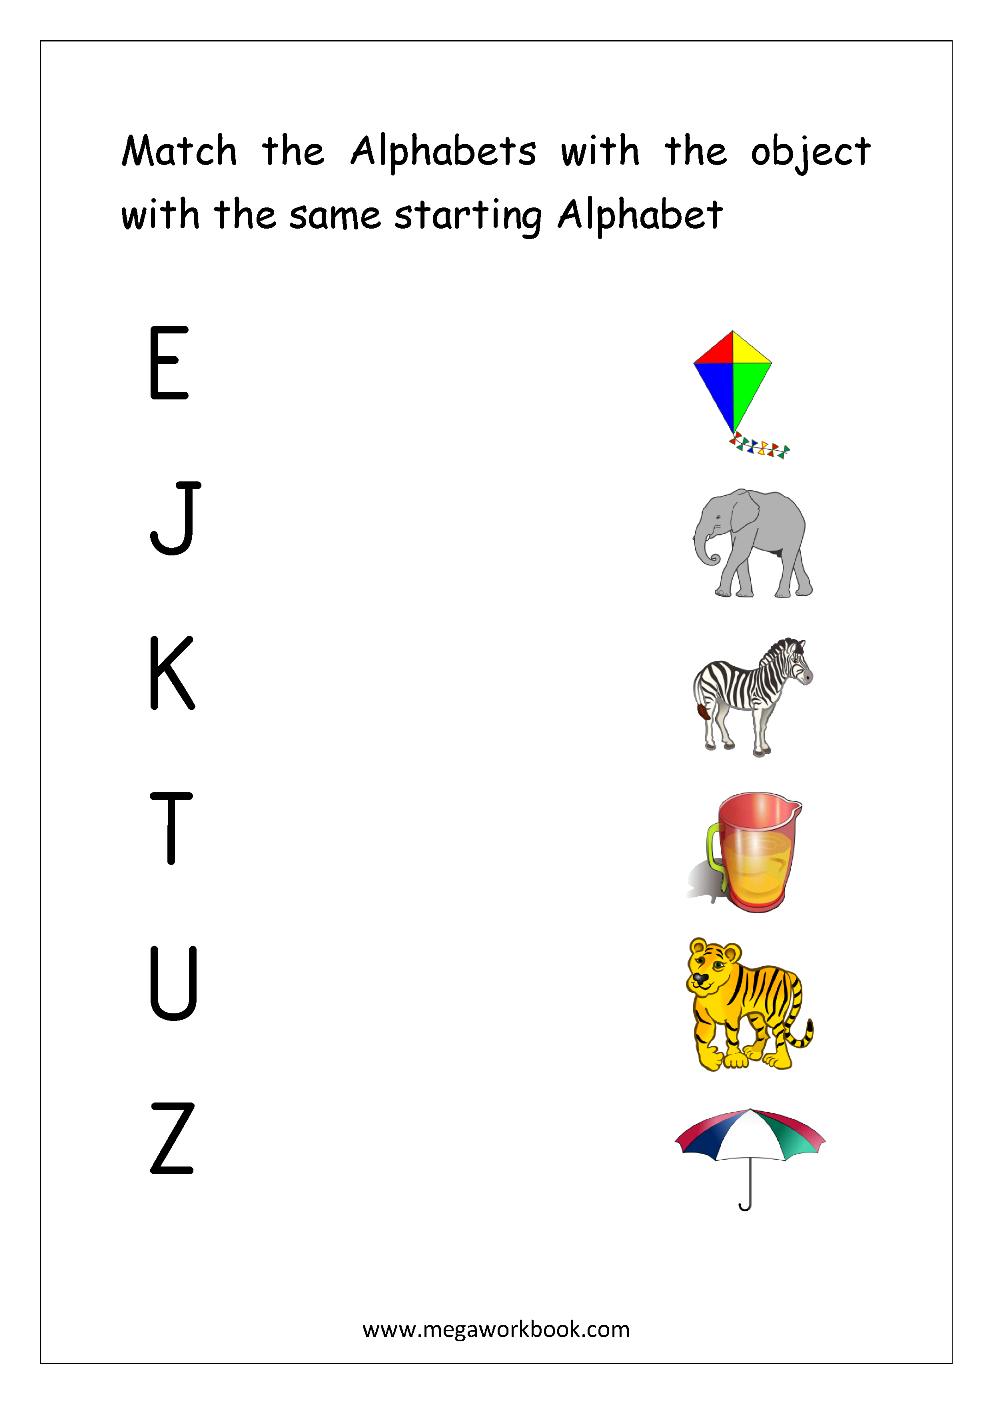 Free English Worksheets - Alphabet Matching - Megaworkbook intended for Alphabet Matching Worksheets With Pictures